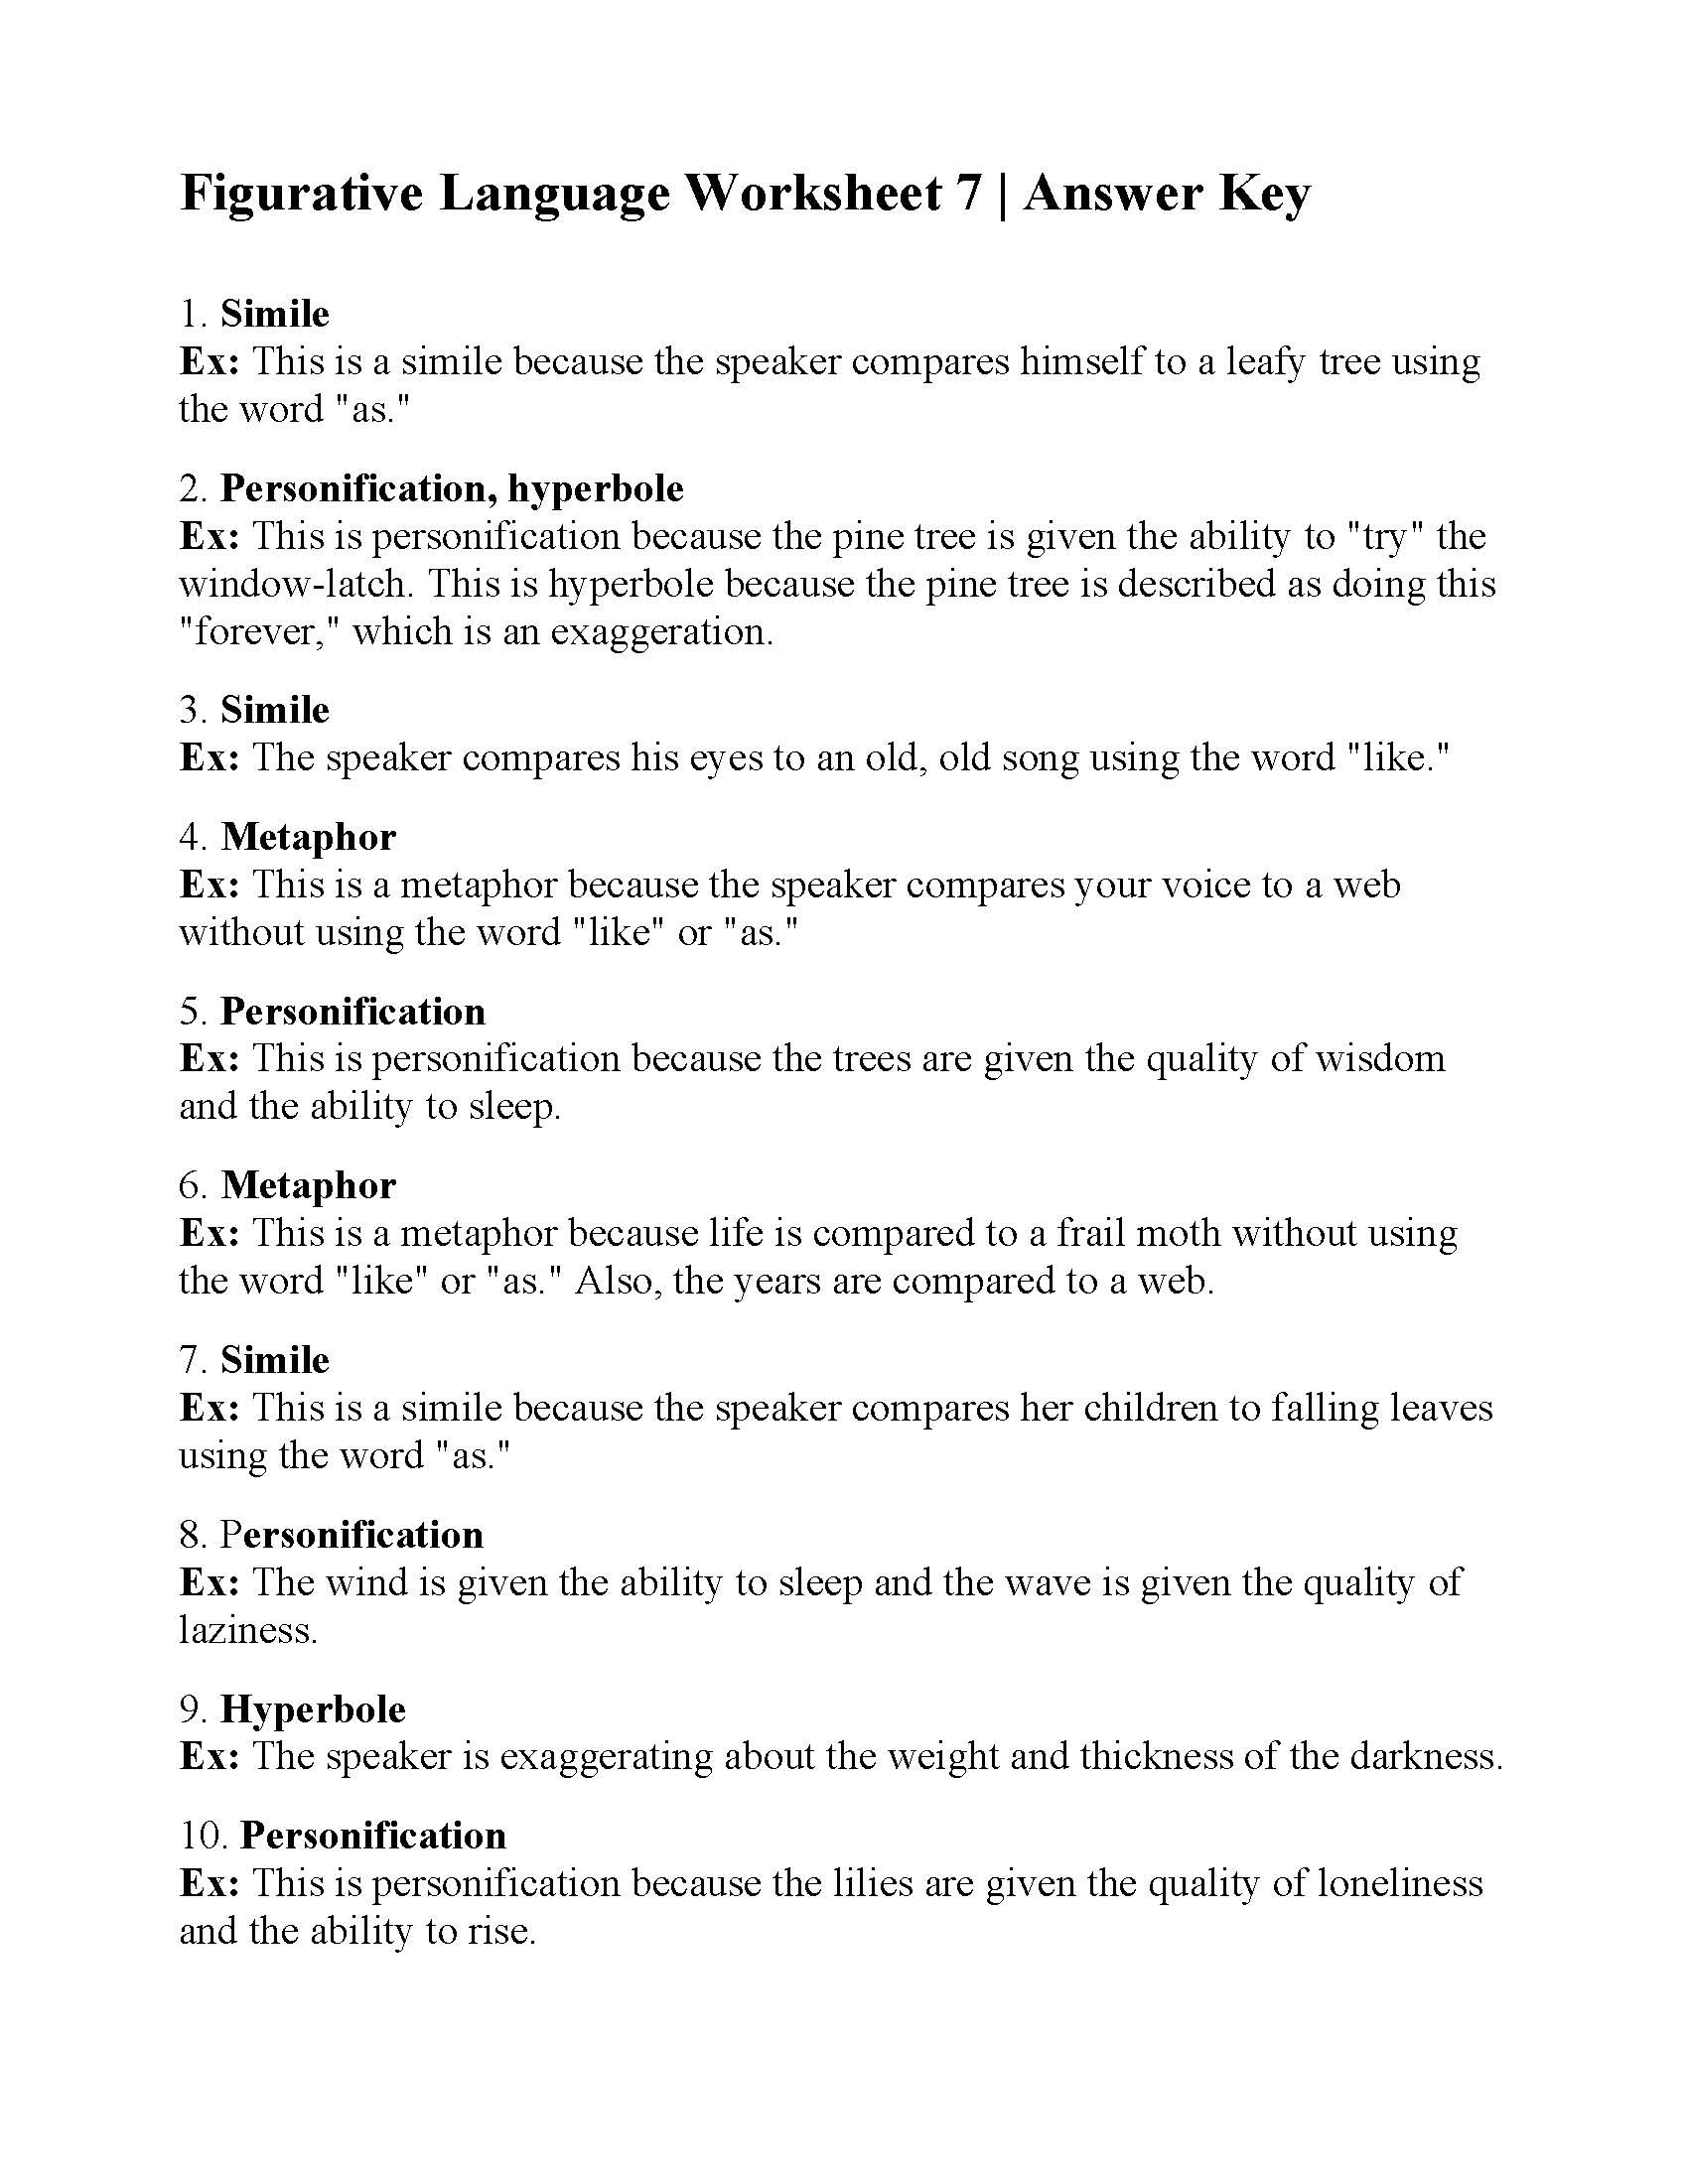 Figurative Language Worksheets High School Math Olympiad 12 Step Worksheets Step 1 Ereading Worksheets